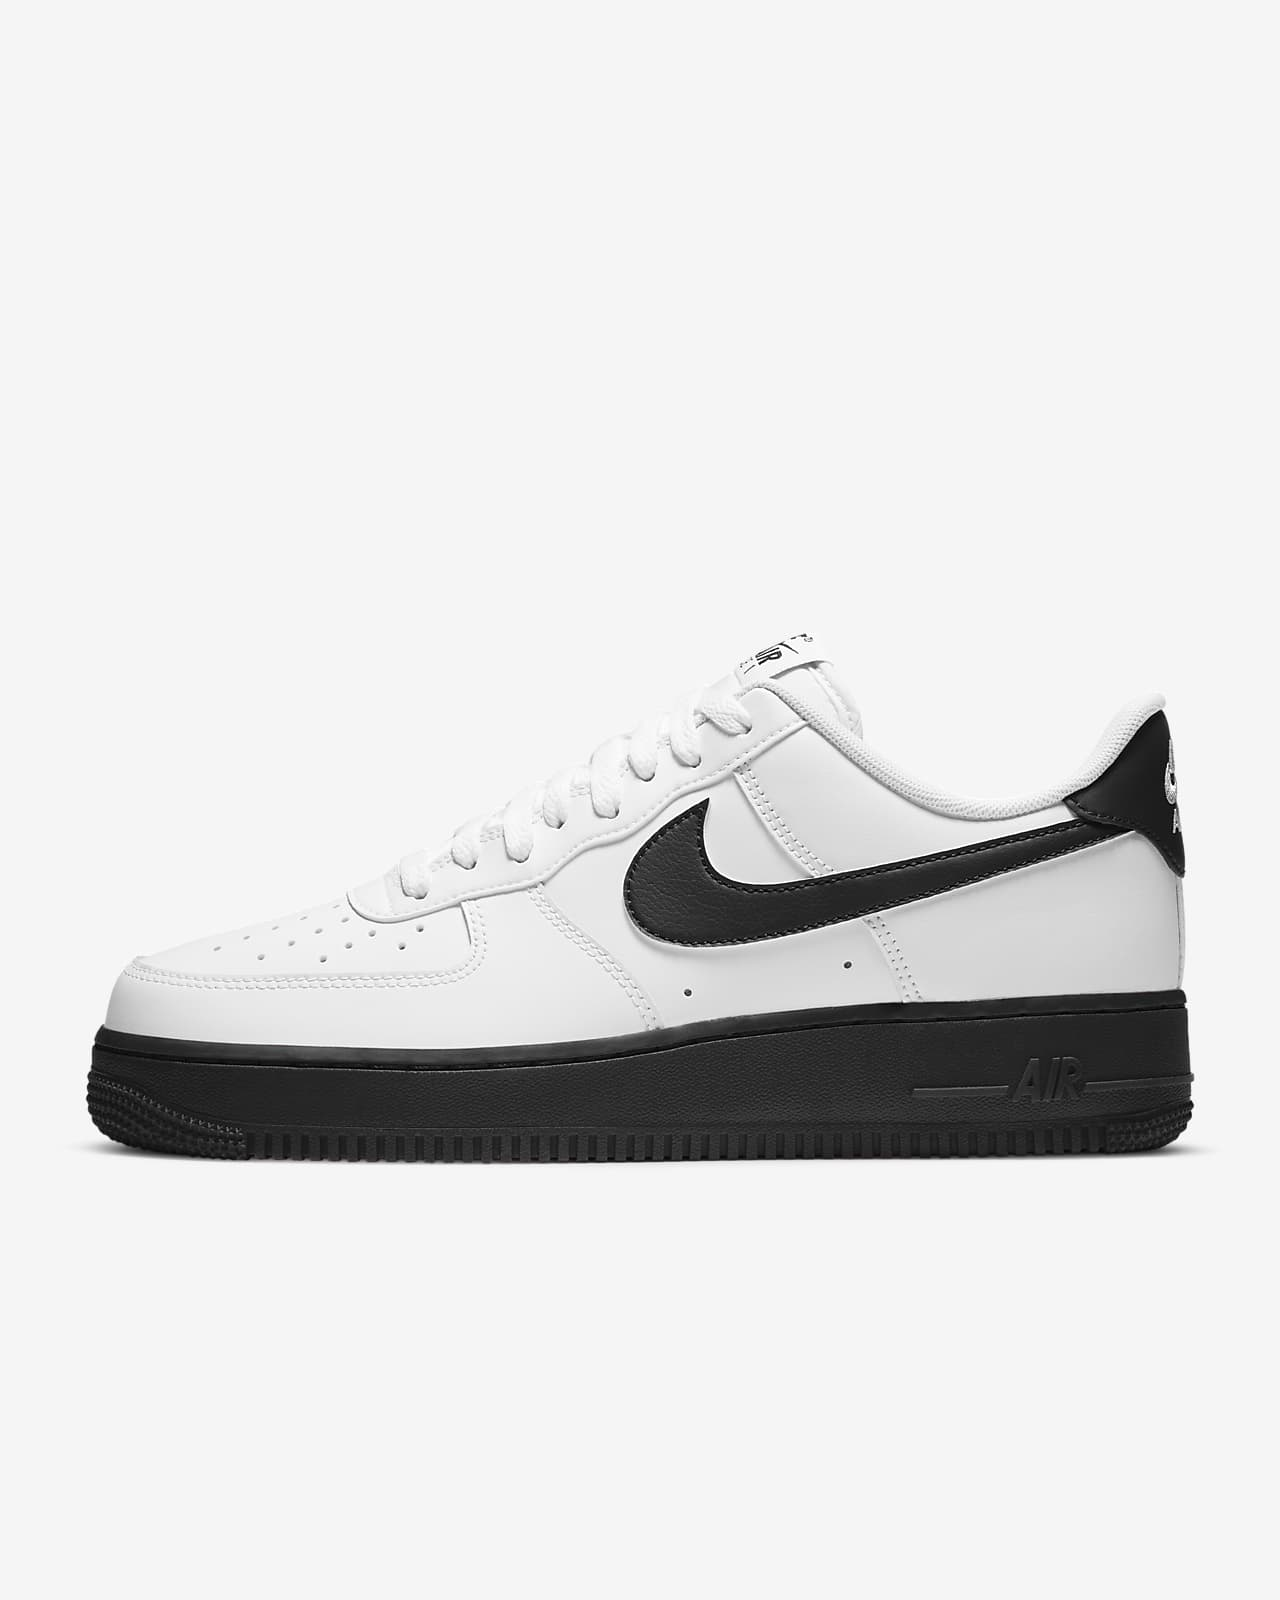 Air Force 1 Low 'White Black Sole' - SNKRS WORLD